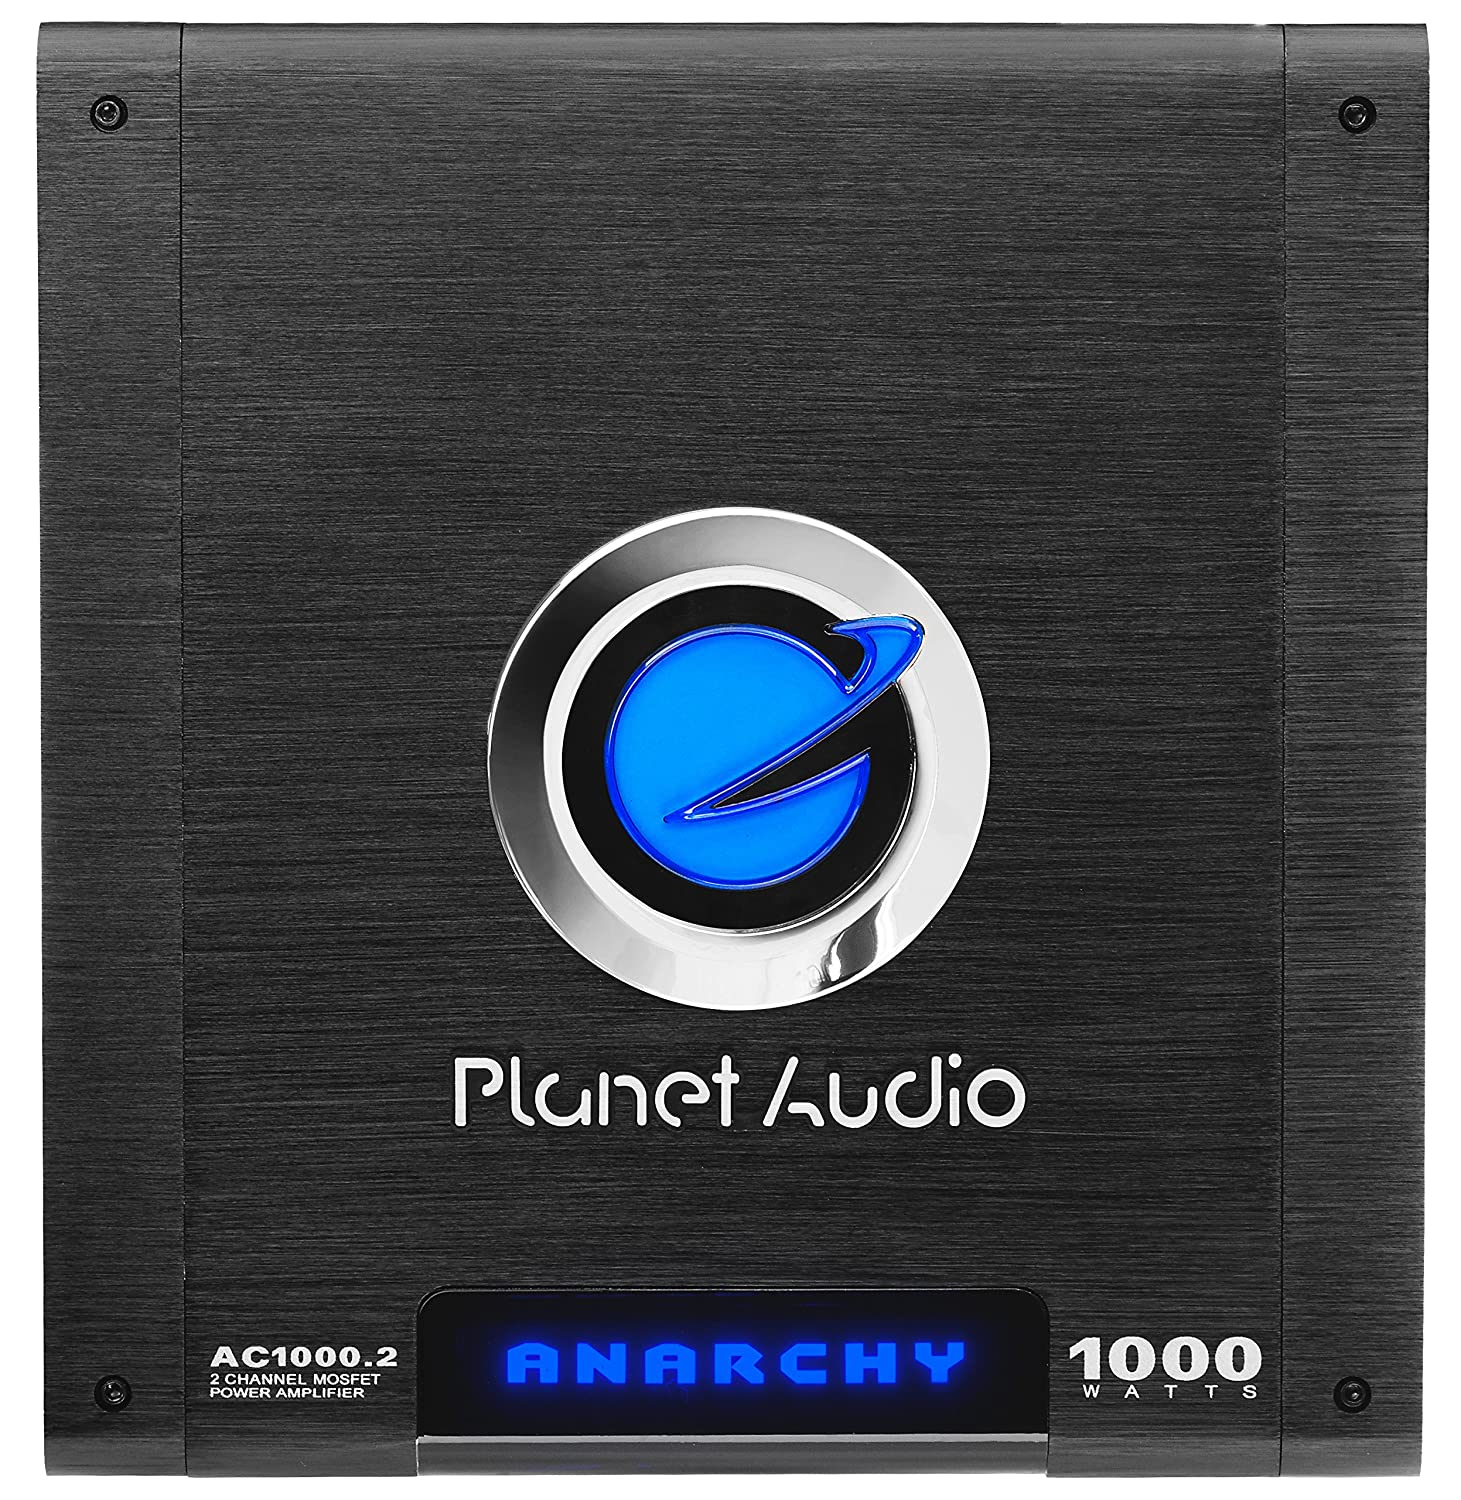 Planet Audio AC2000.2 ANARCHY 2000-watts Full Range Class A/B 2 Channel 2 Ohm Stable Amplifier Planet Audio (PLB8E)